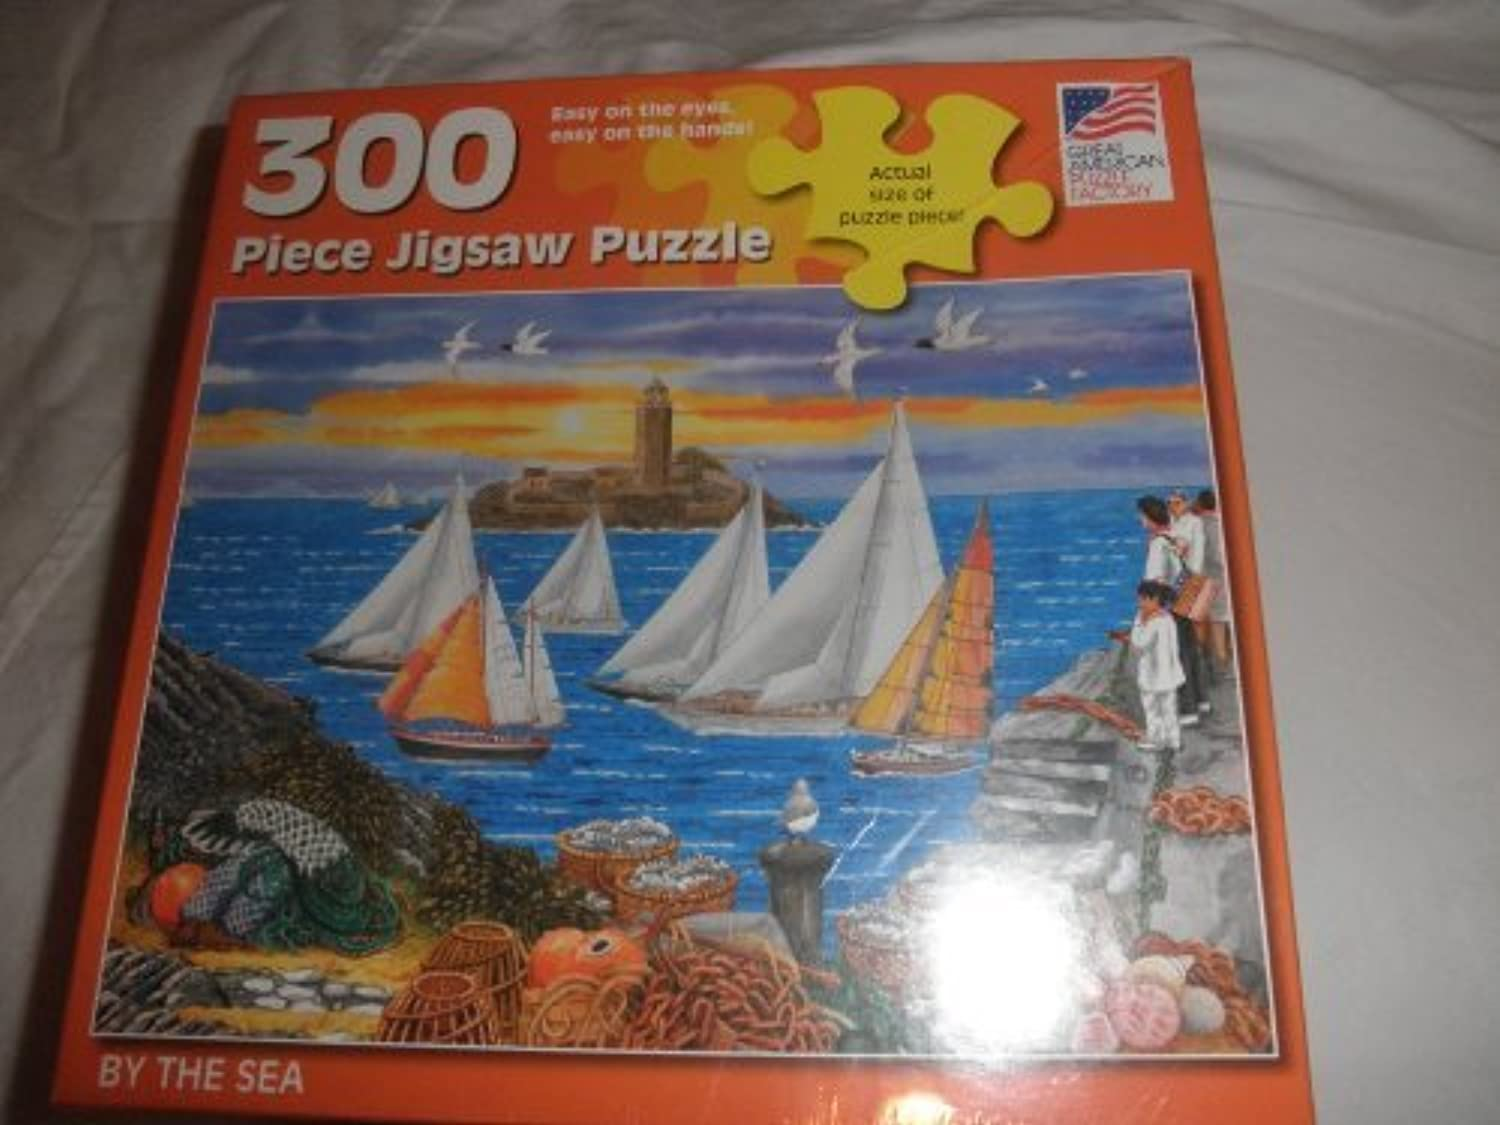 By the Sea Puzzle by Great American Puzzle Factory